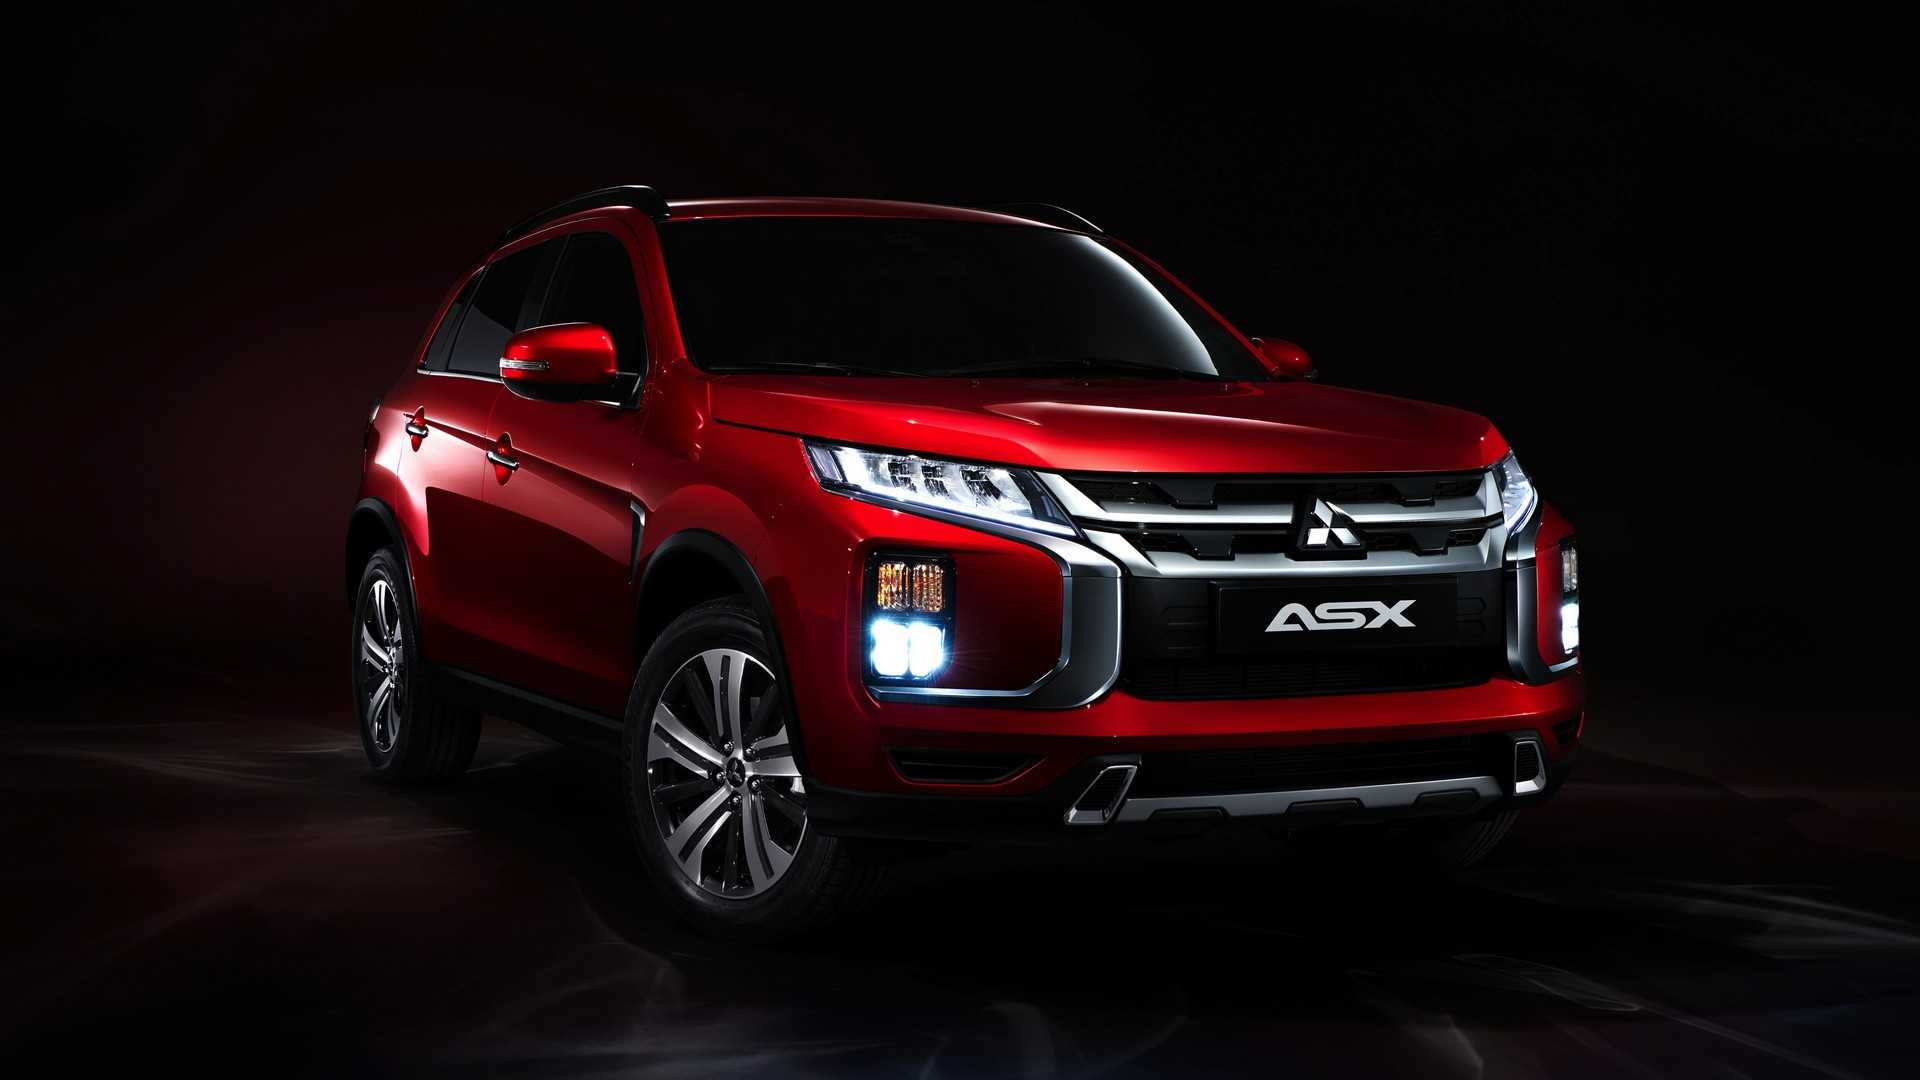 78 A Mitsubishi Asx 2020 Review Exterior And Interior